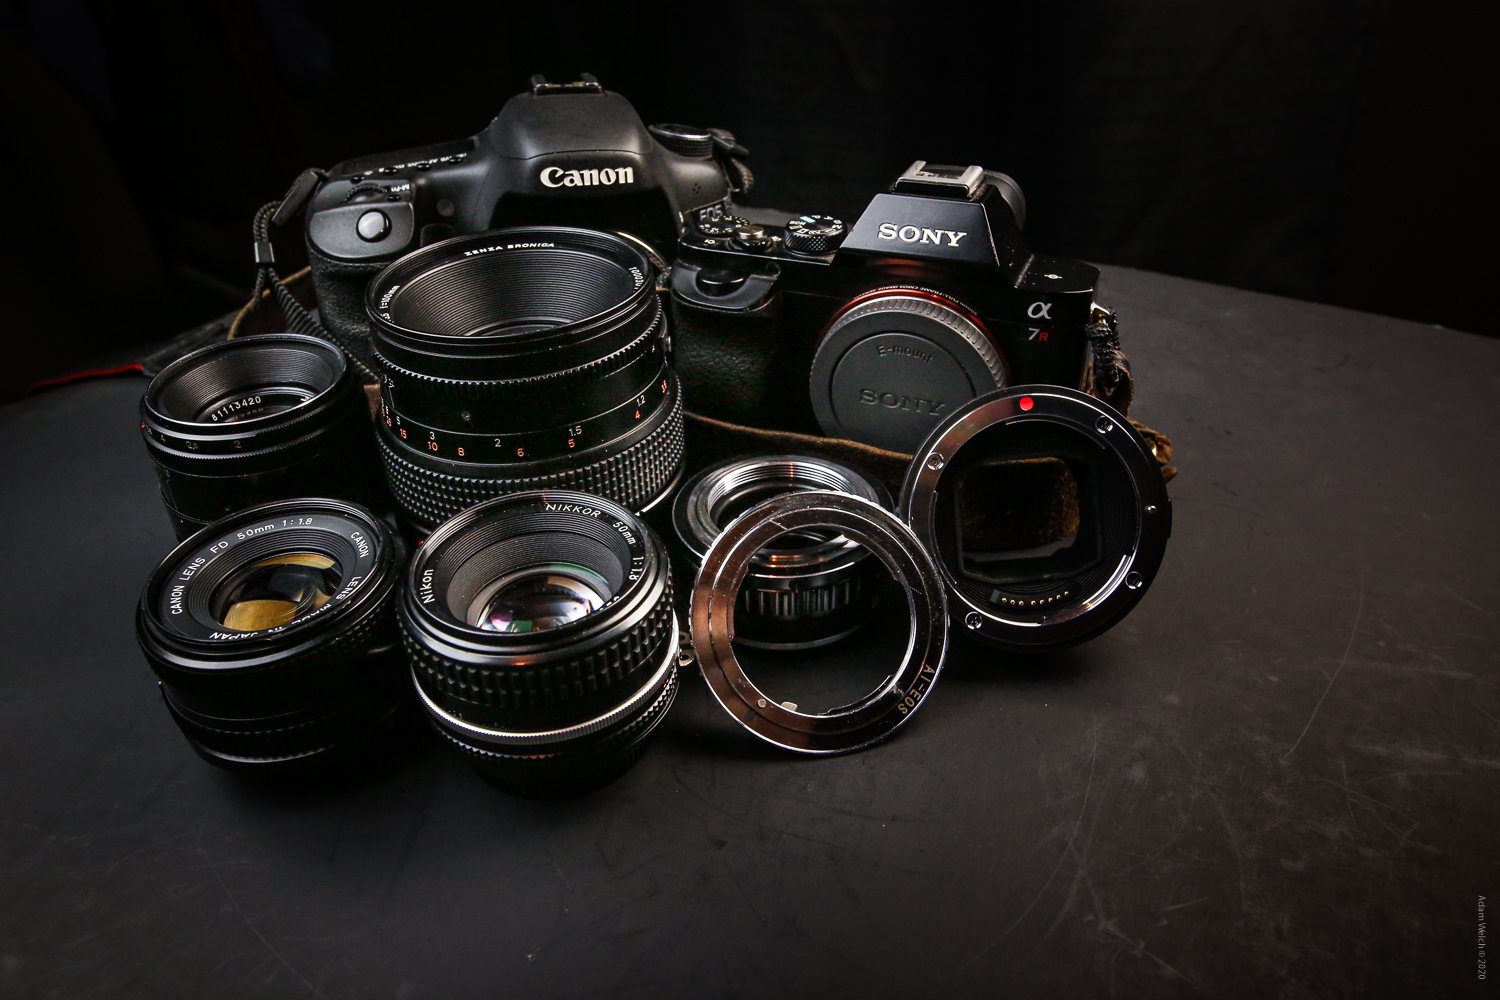 https://i1.wp.com/digital-photography-school.com/wp-content/uploads/2020/01/how-to-use-old-lenses-with-new-digital-cameras-adam-welch-digital-photography-school-1.jpg?resize=1500%2C1000&ssl=1